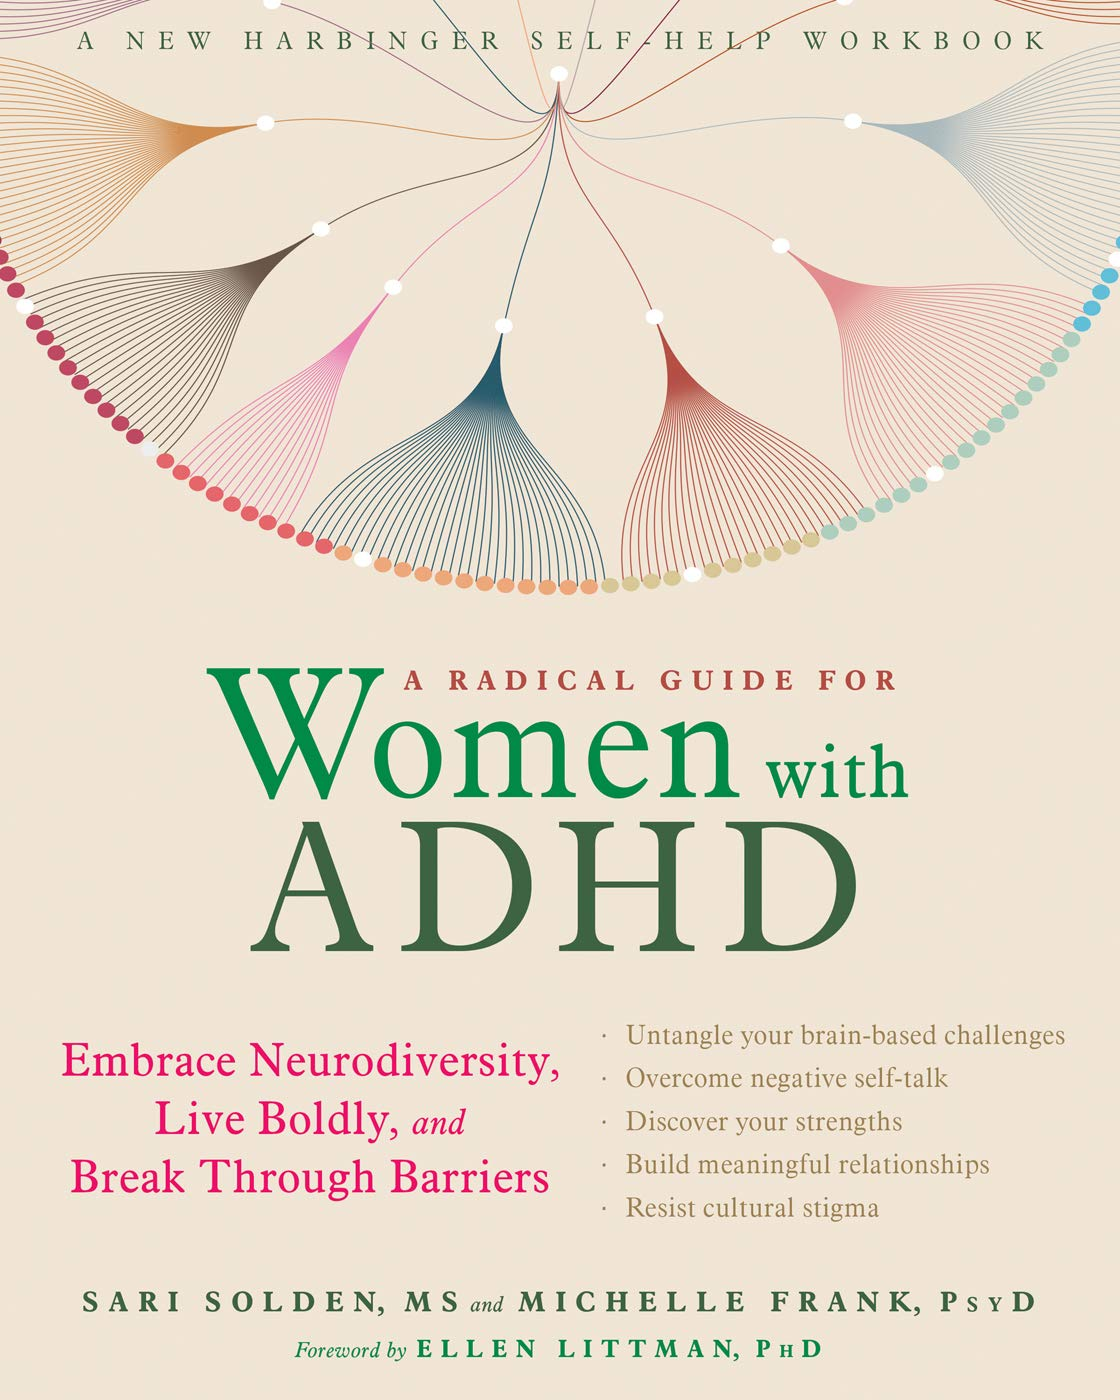 A Radical Guide For Women With Adhd Embrace Neurodiversity Live Boldly And Break Through Barriers Solden Ms Sari Frank Psyd Michelle Littman Phd Ellen 9781684032617 Amazon Com Books